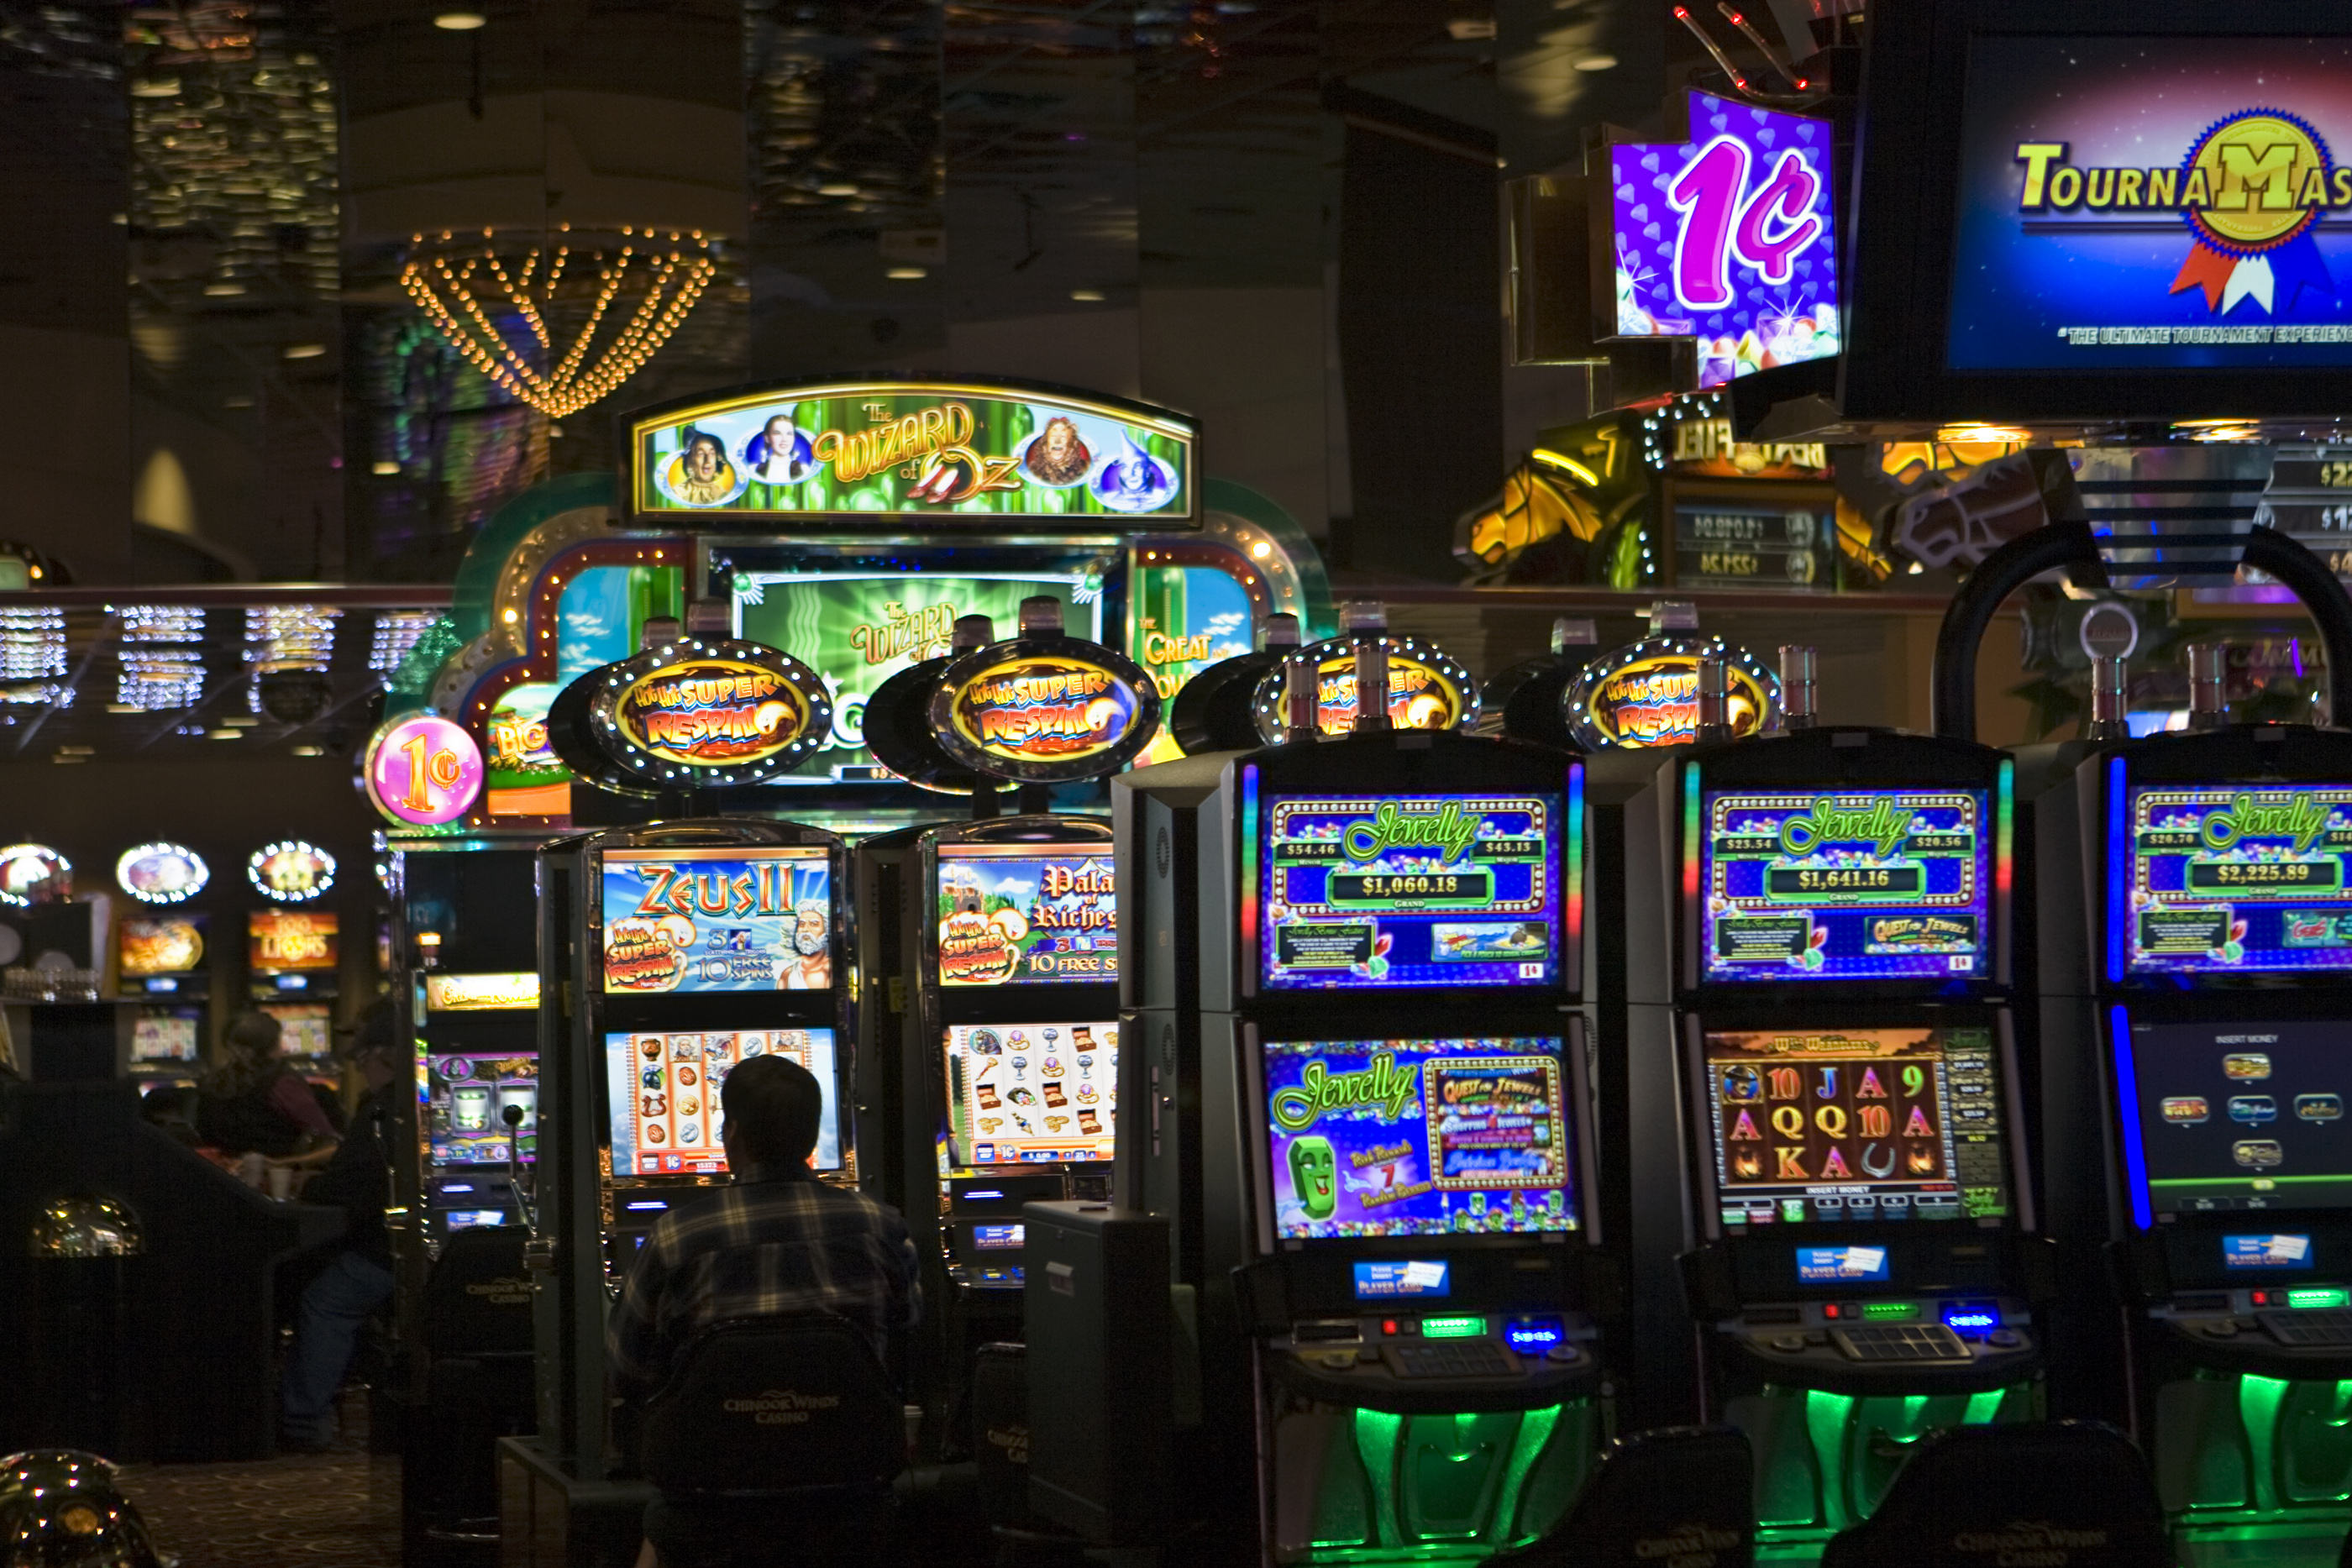 Chinook Winds, Mill Casino will become first tribal casinos to reopen in  Oregon since coronavirus outbreak - oregonlive.com